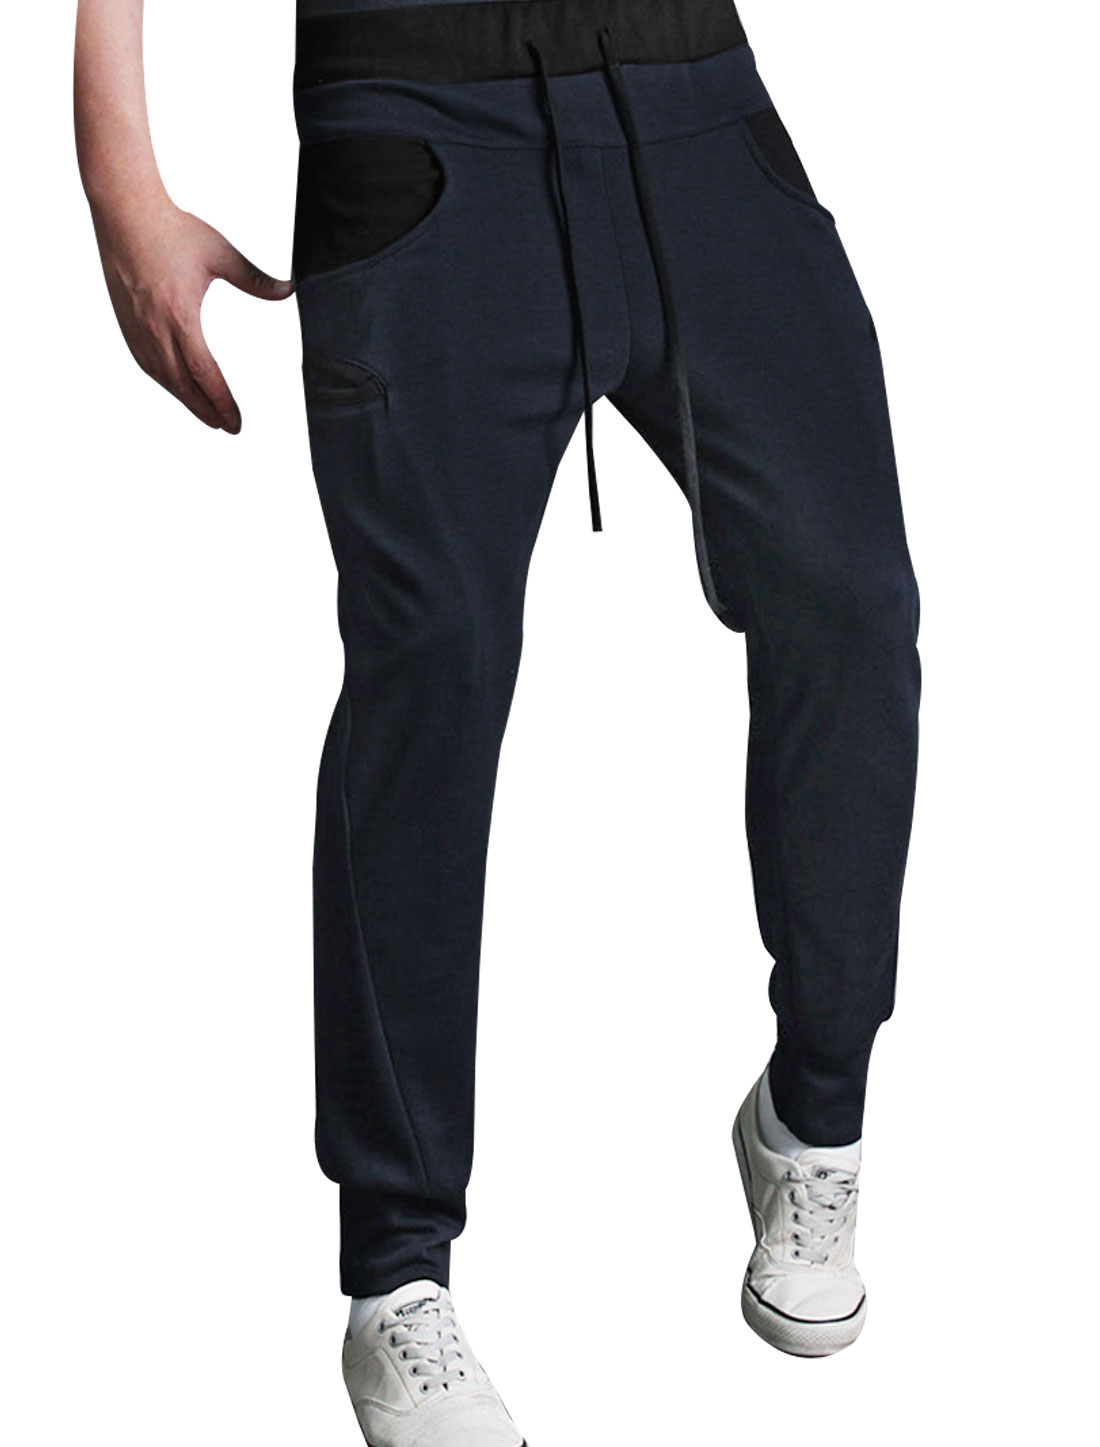 Mens Dark Blue Low Waist New Fashion Pockets Details Leisure Pants W32